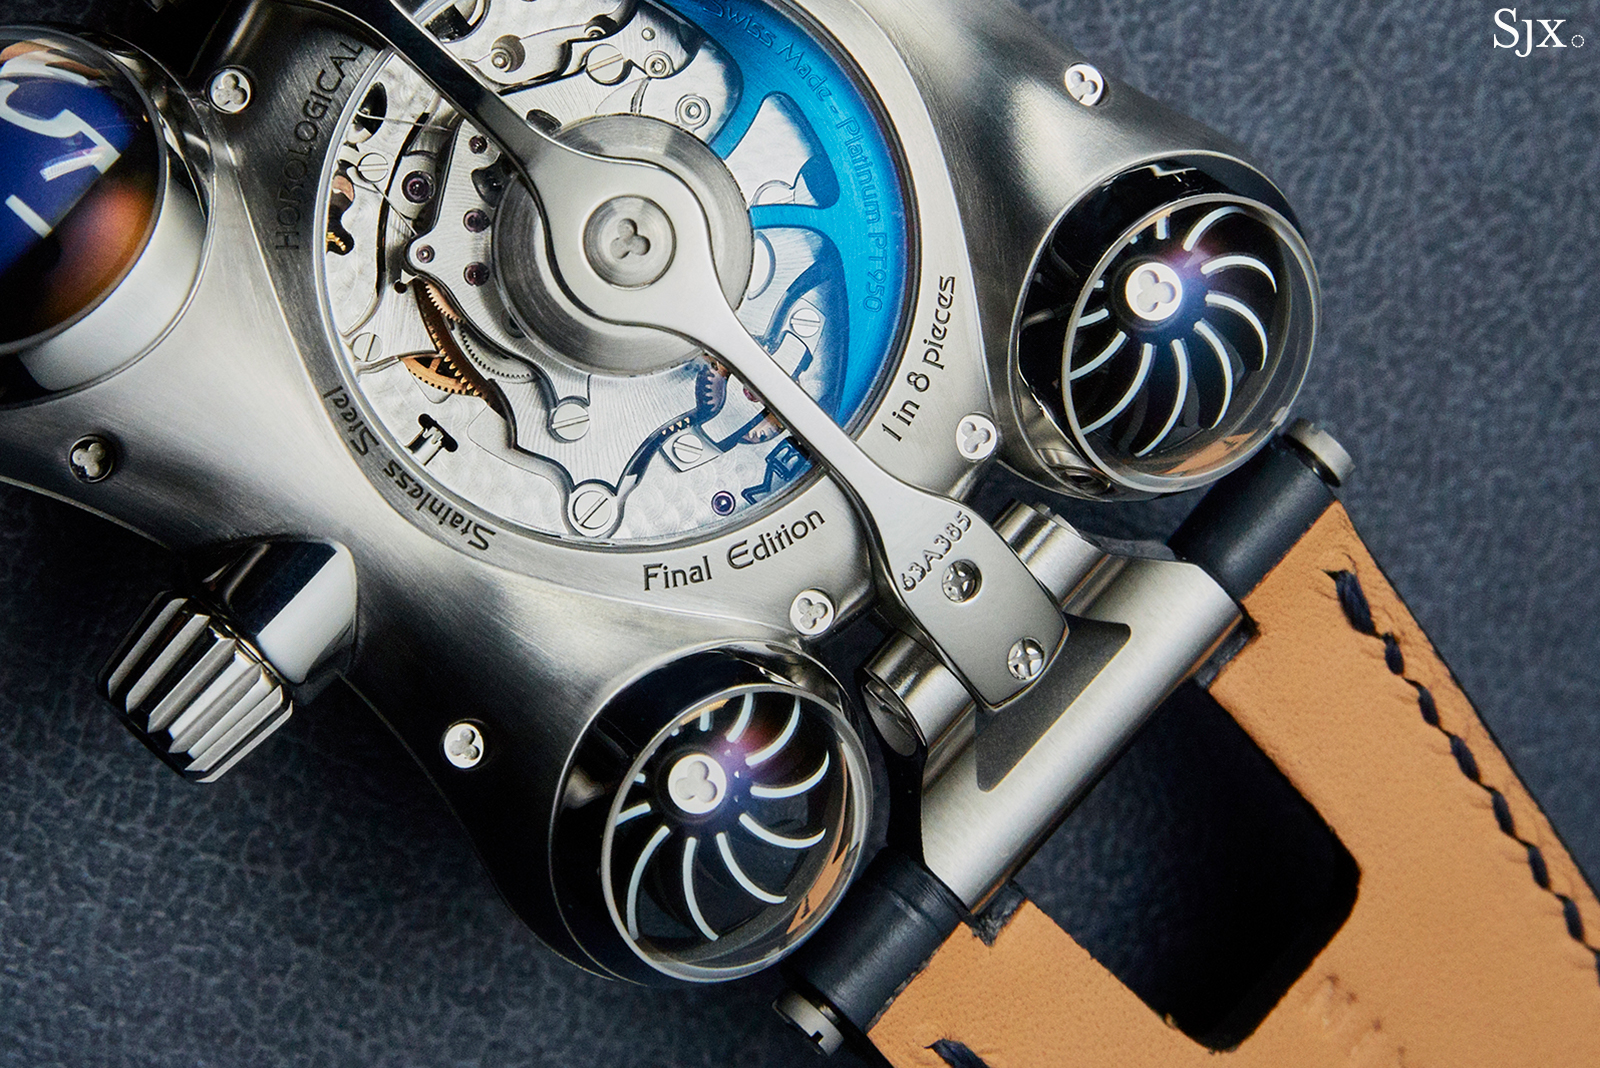 MB&F HM6 Final Edition back close up